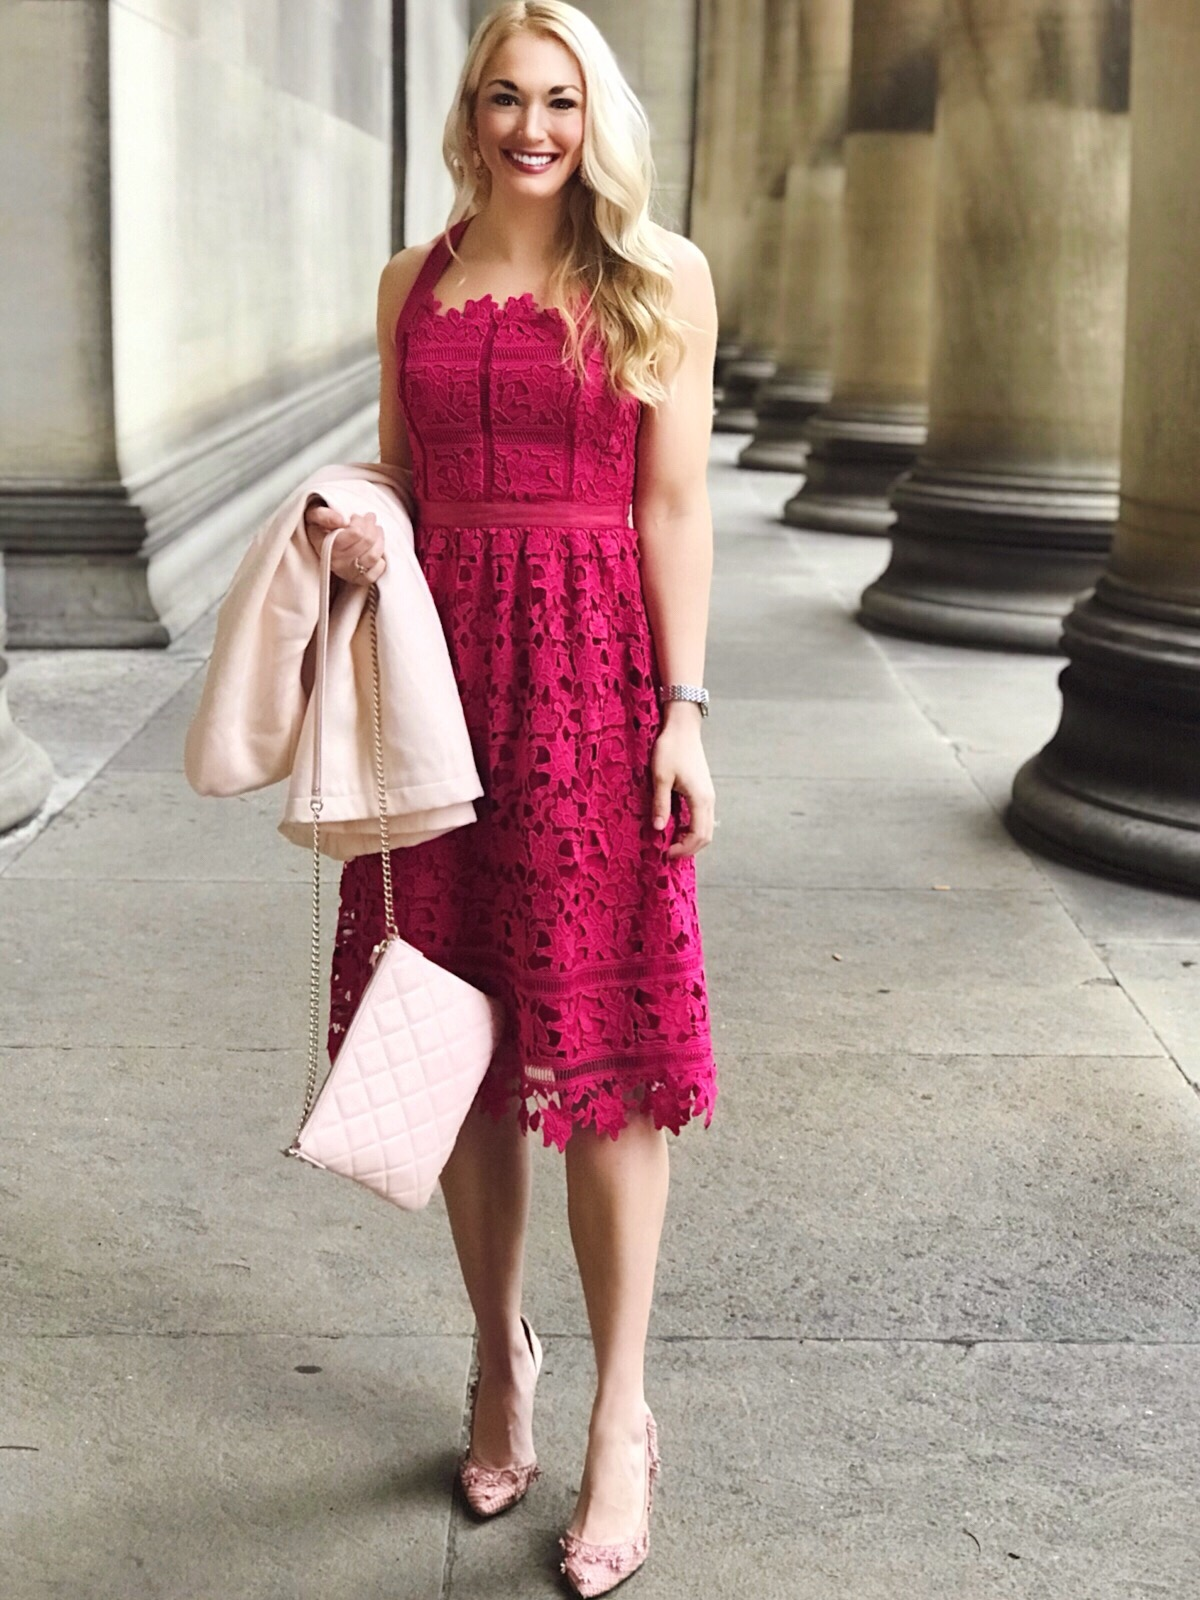 Lace Fit and Flare Dress | Valentine's Day Dress | Quilted Purse | Floral Embellished Pumps | #springstyle #fashion #fashionblogger #style #styleblogger #classicfashion #lacedress